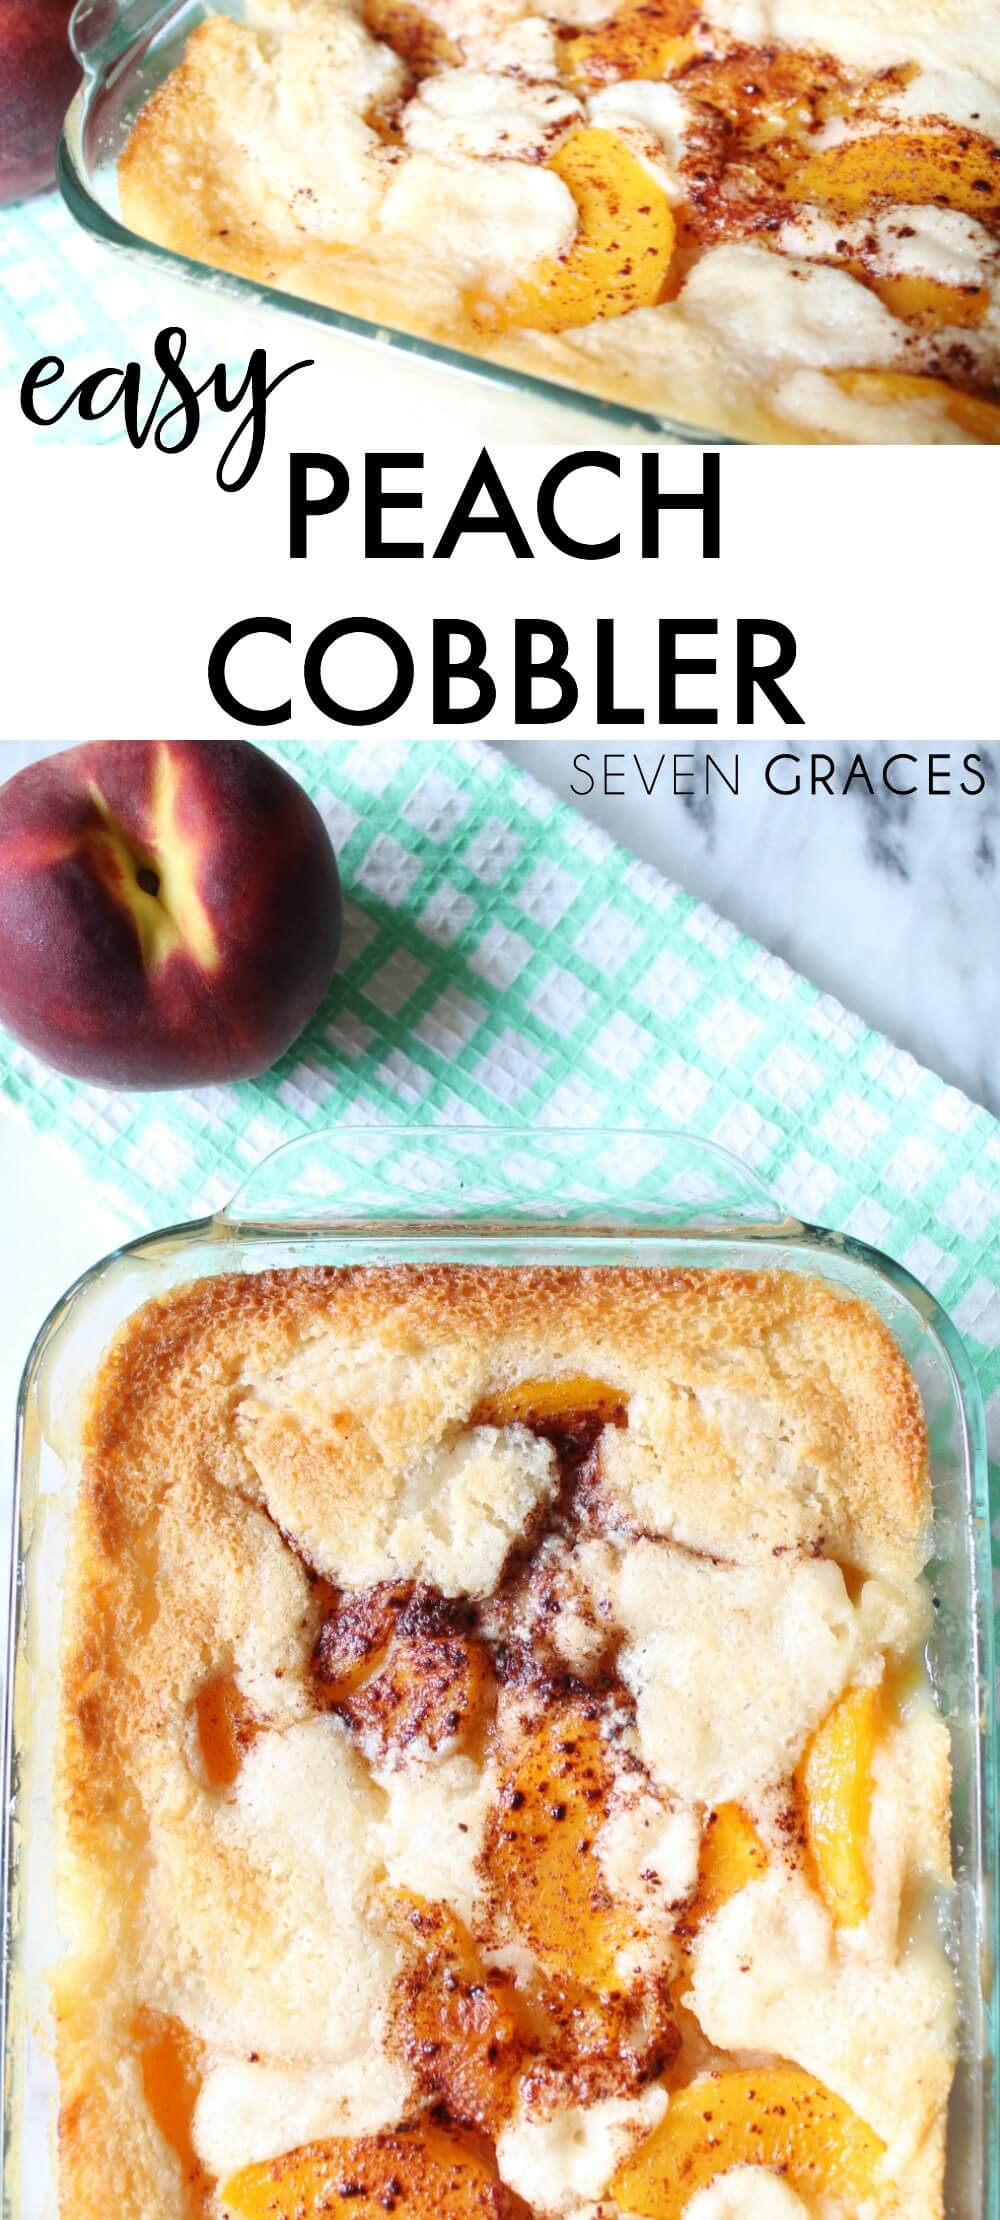 The easiest and most delicious peach cobbler recipe you'll ever need. A nice crunch on the top with a gooey filling on the inside. Delicious!